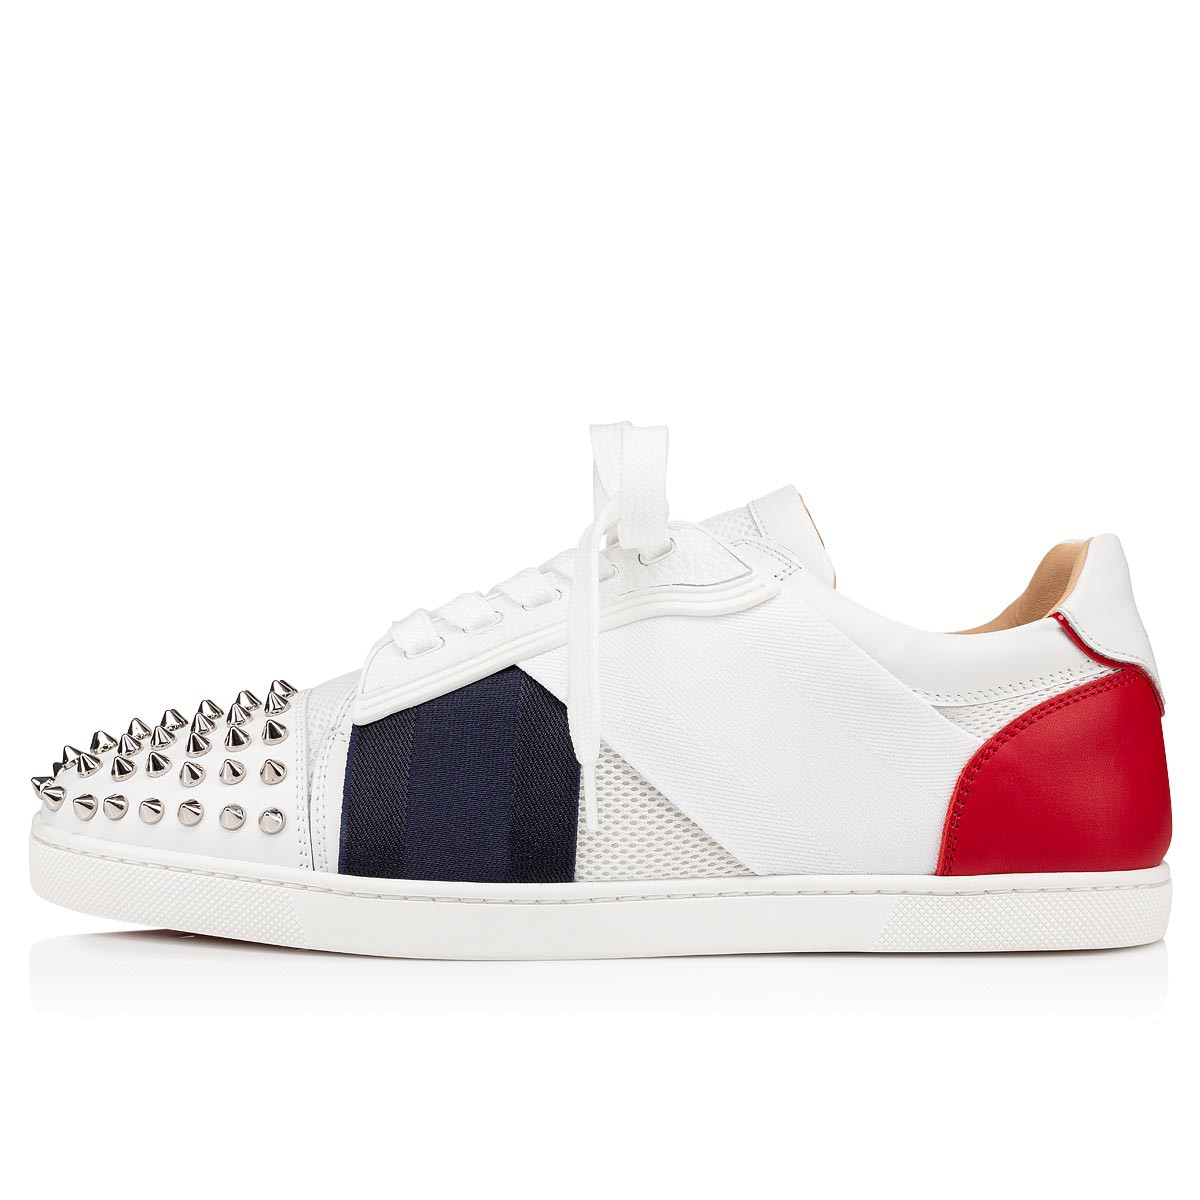 Shoes - Elastikid Spikes Donna - Christian Louboutin